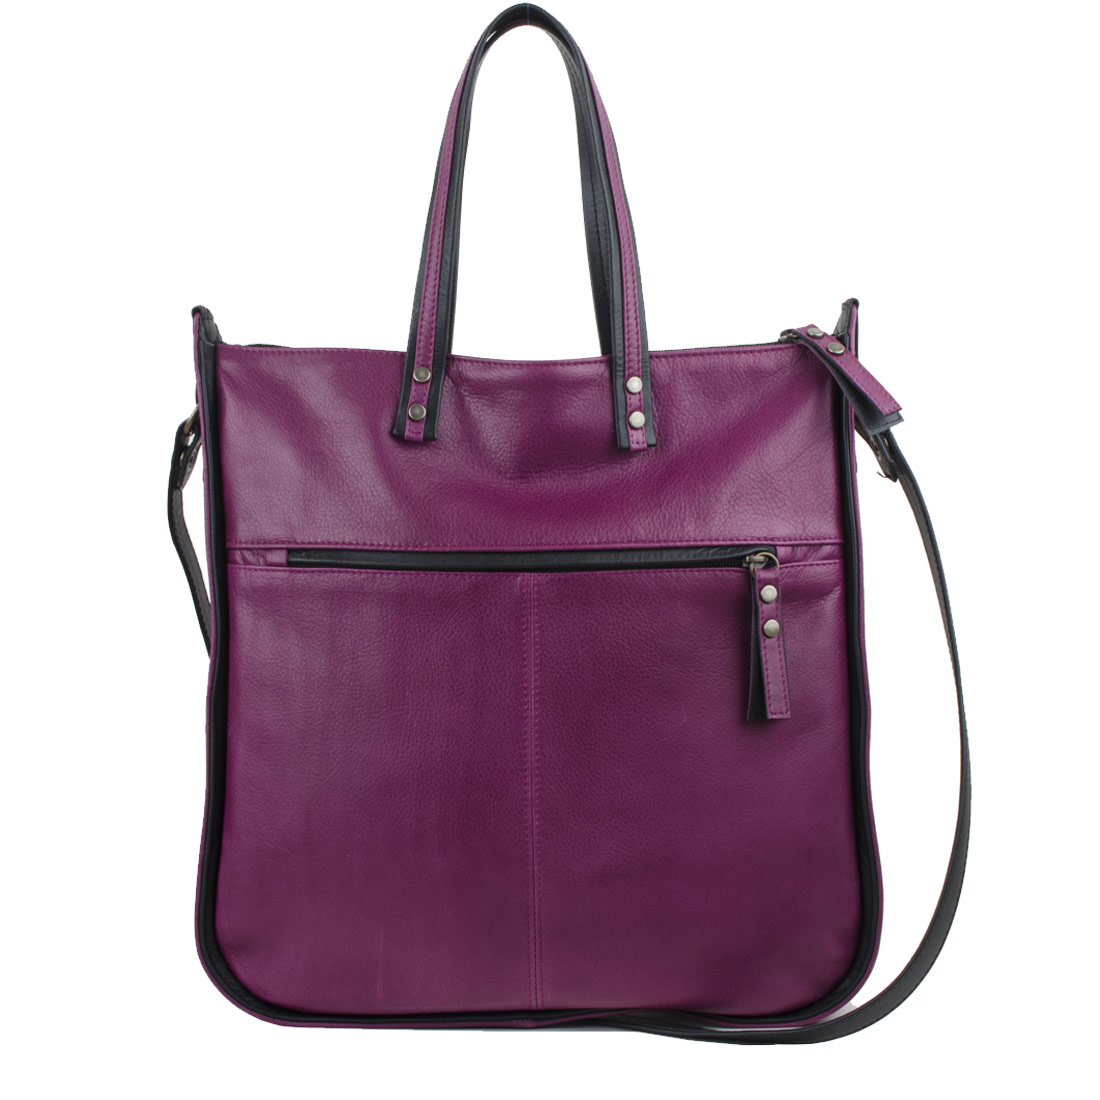 Tessa Magenta Leather Tote